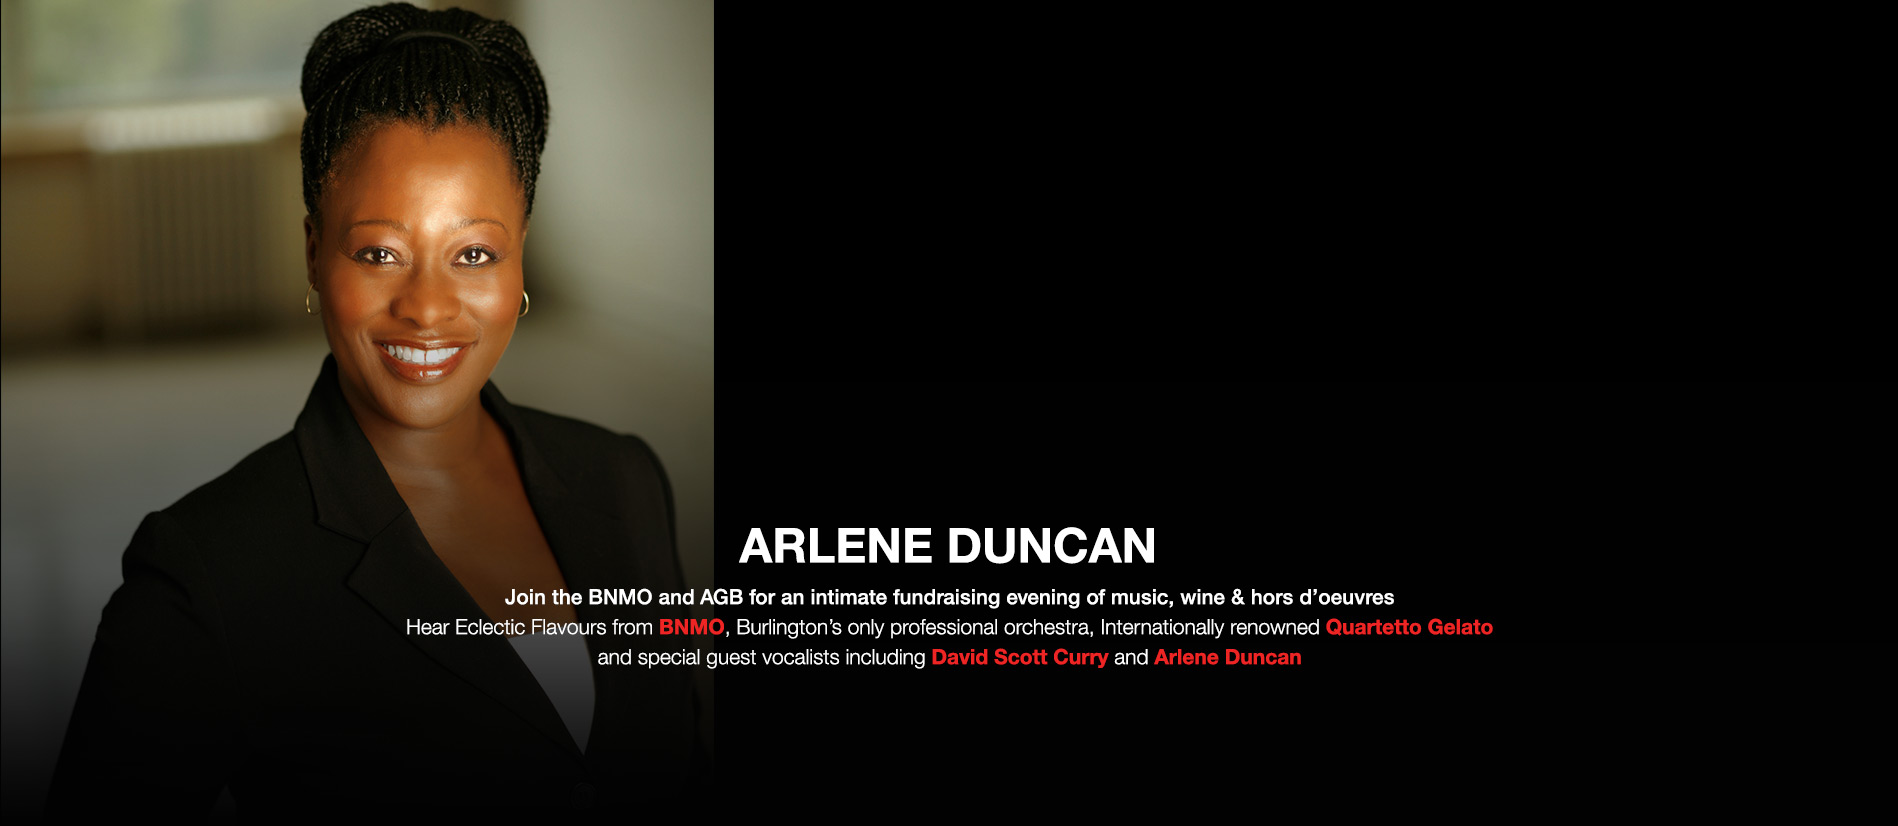 Hear Eclectic Flavours from Arlene Duncan